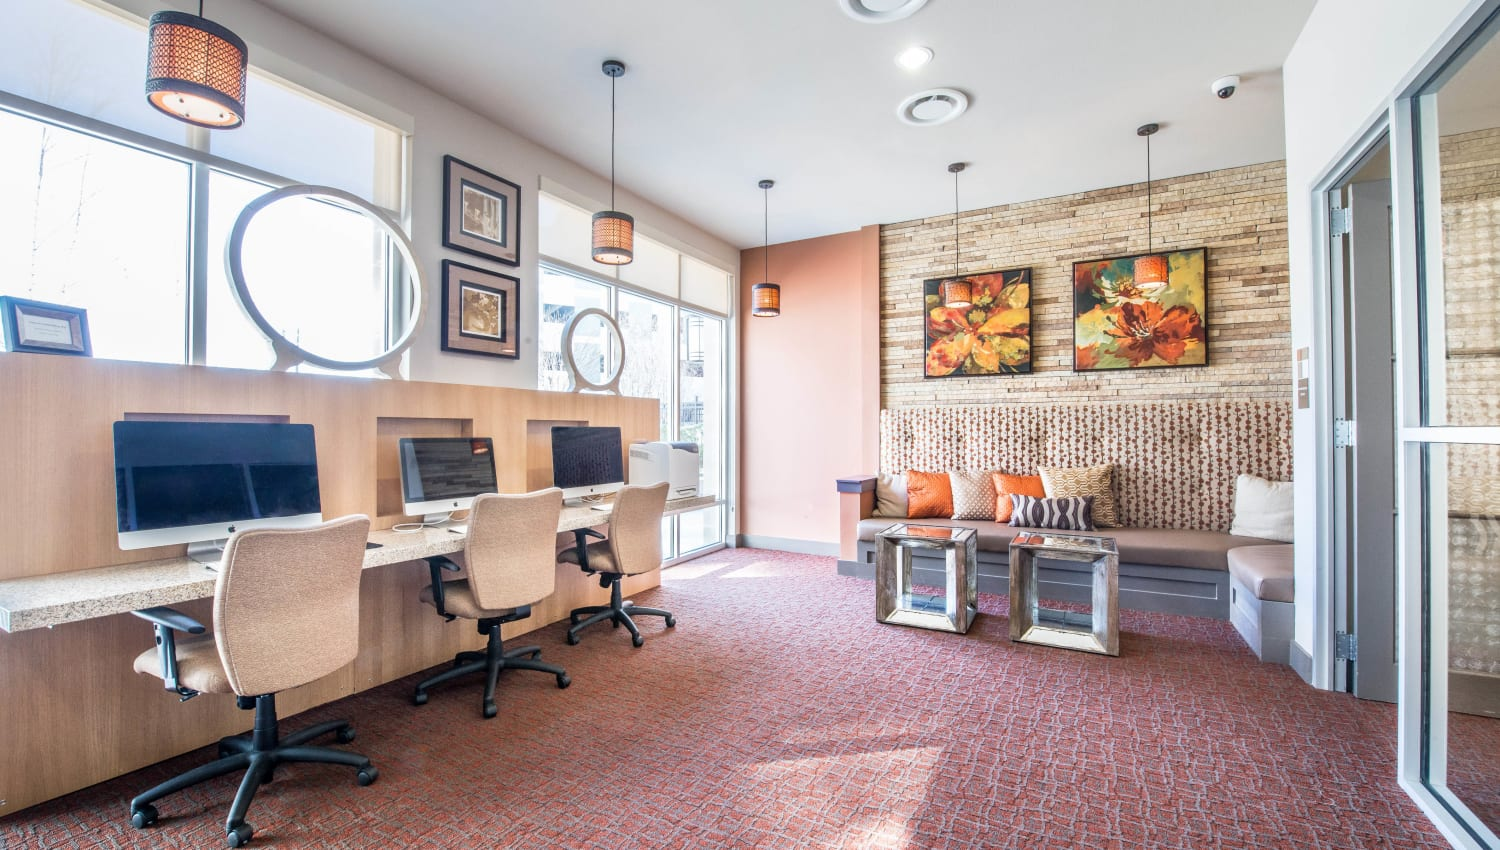 Computer workstations for resident use in the business center at Union At Carrollton Square in Carrollton, Texas